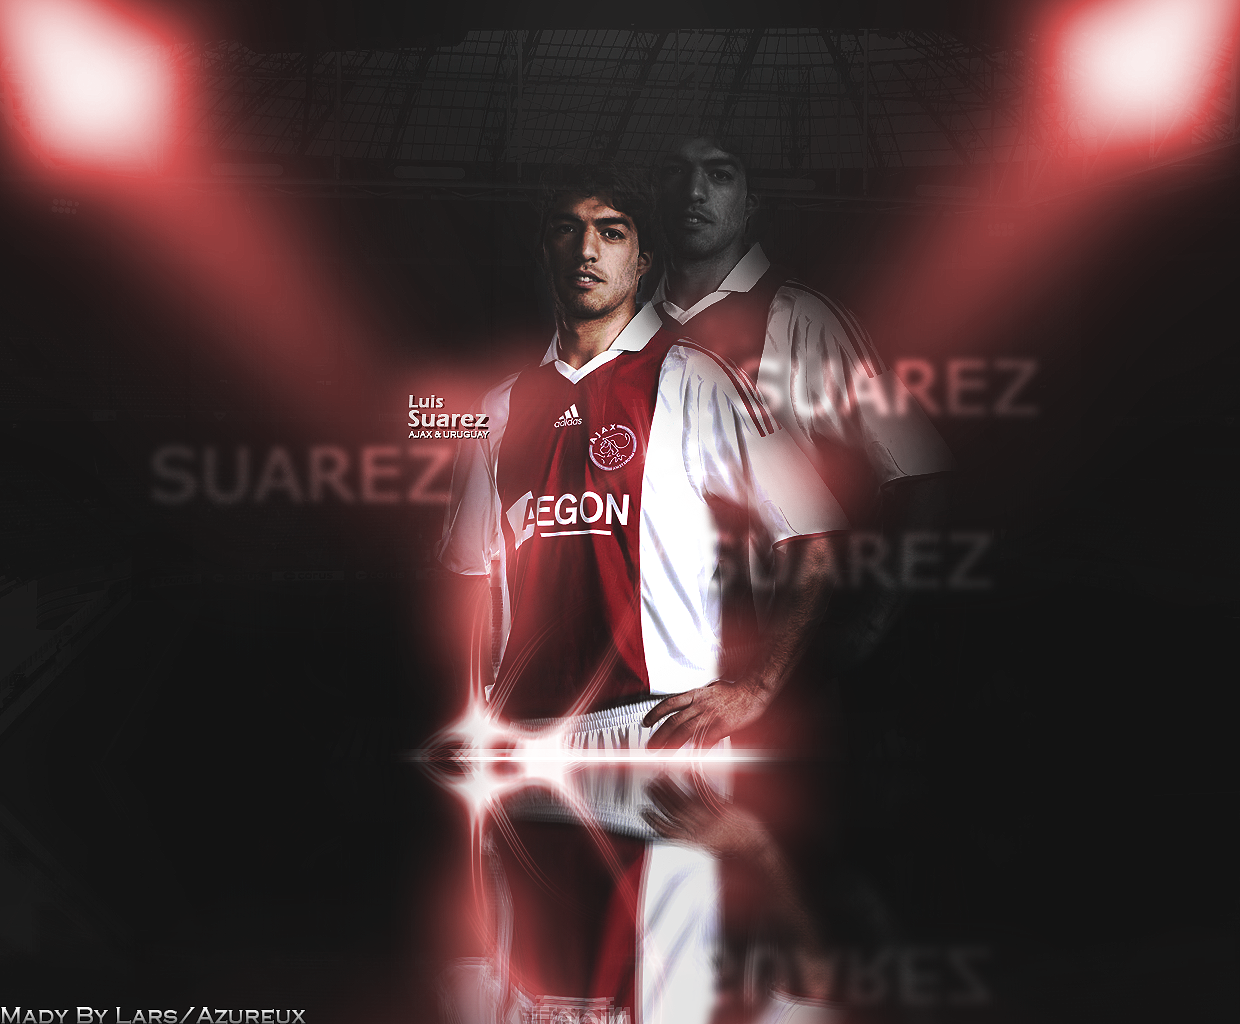 Luis Suarez Wallpapers PICTURES FOOTBALL 1240x1024